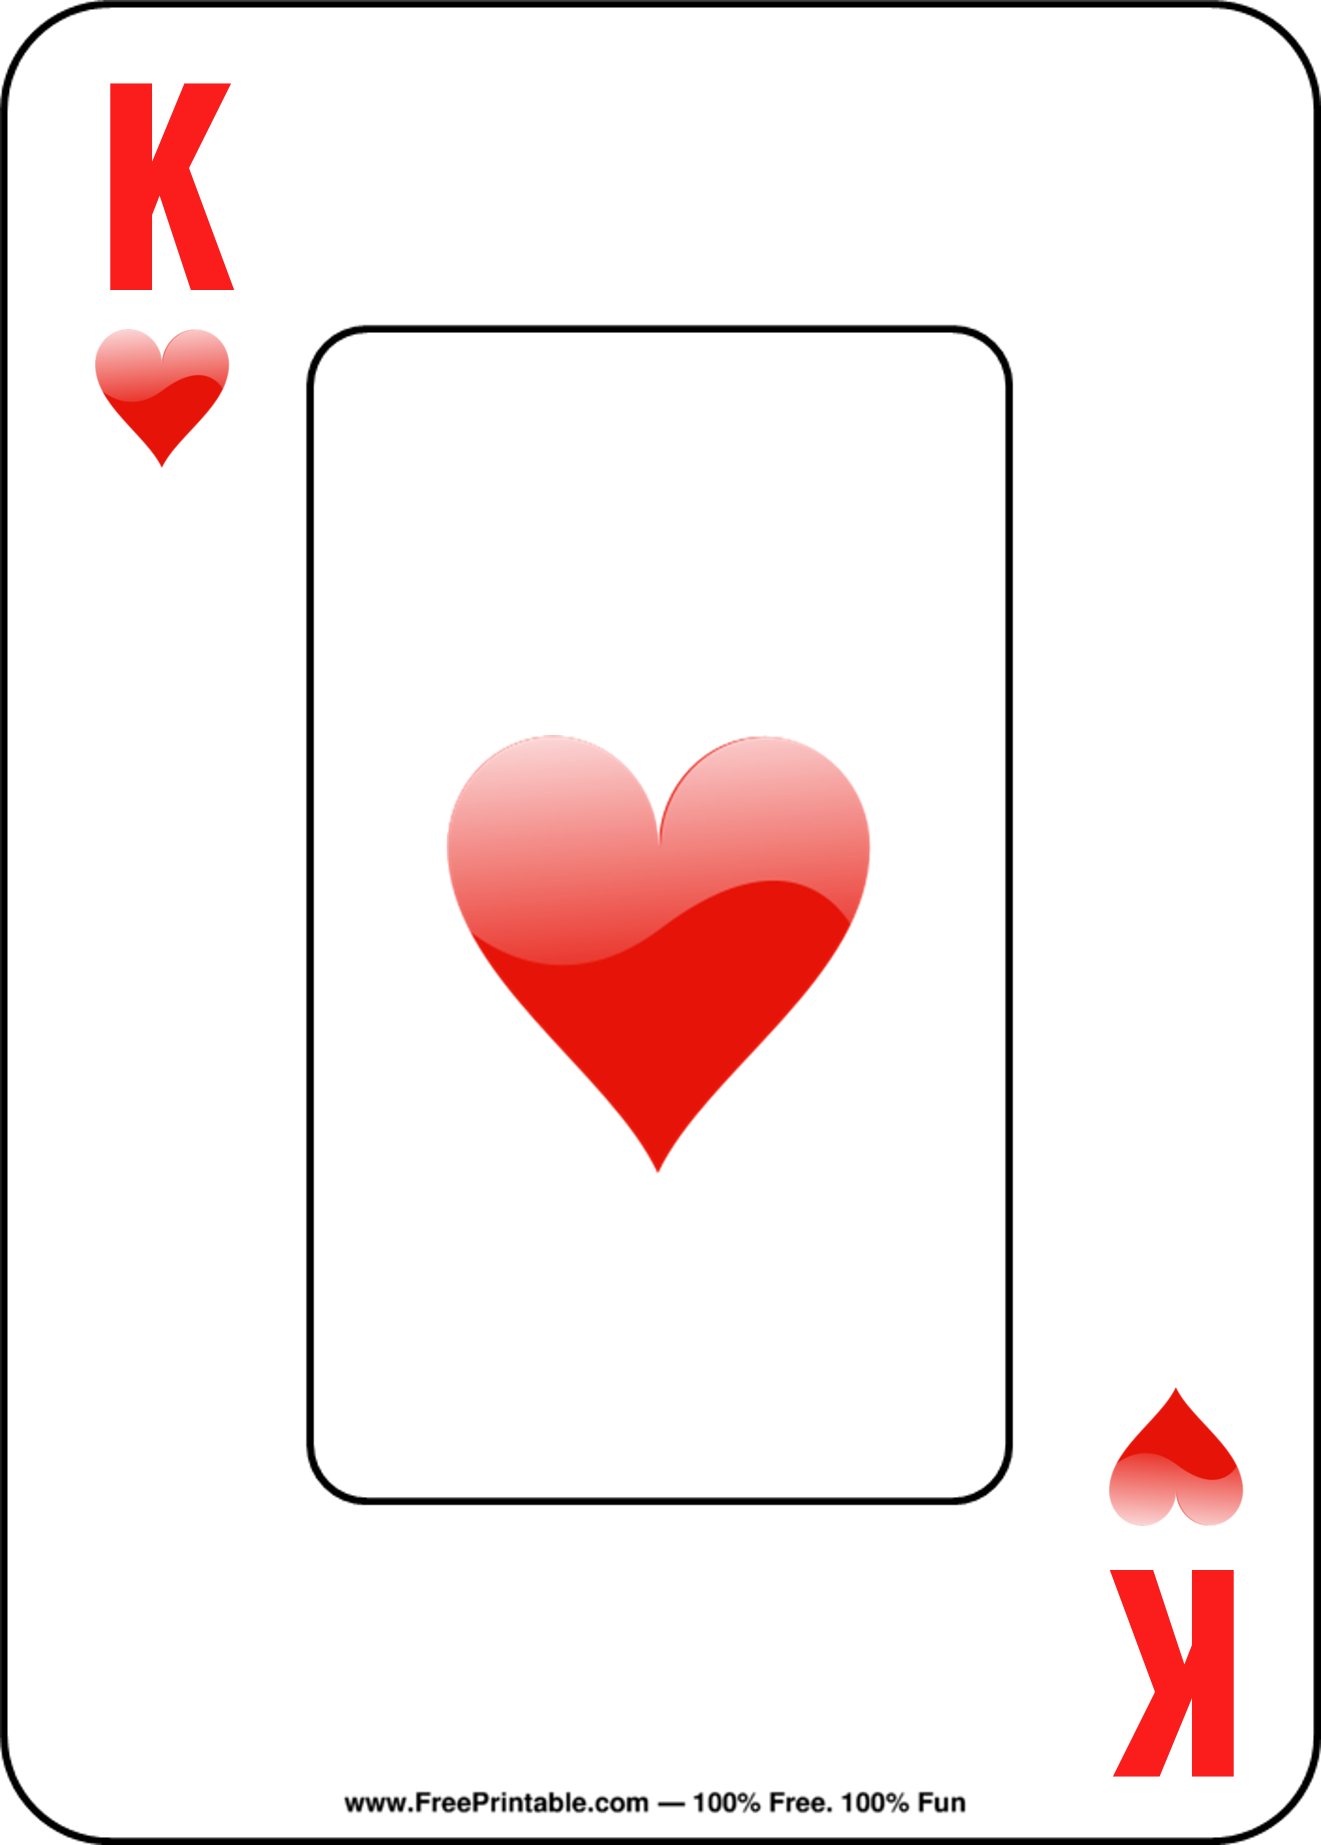 image regarding Printable Playing Cards known as Cost-free Printable Actively playing Playing cards